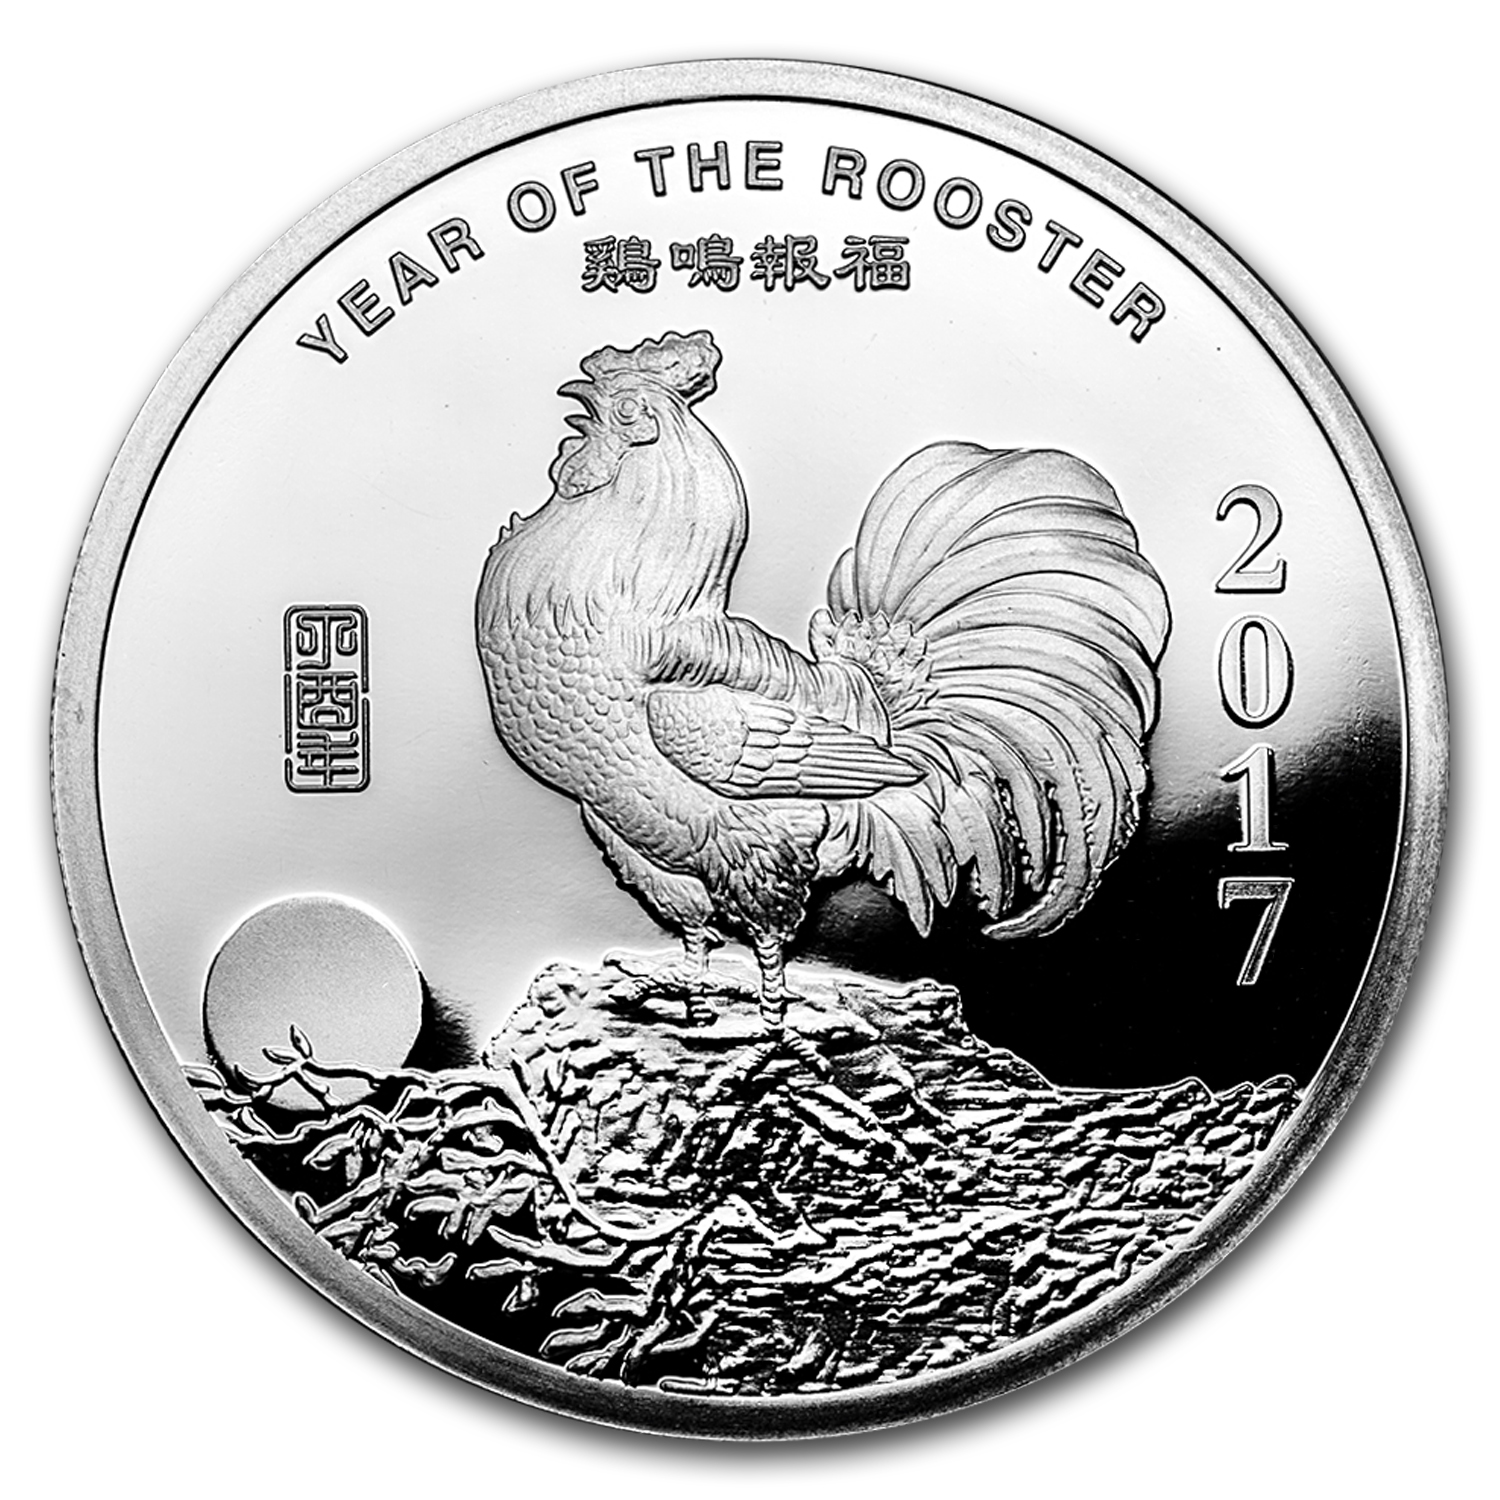 2 oz Silver Round - APMEX (2017 Year of the Rooster)